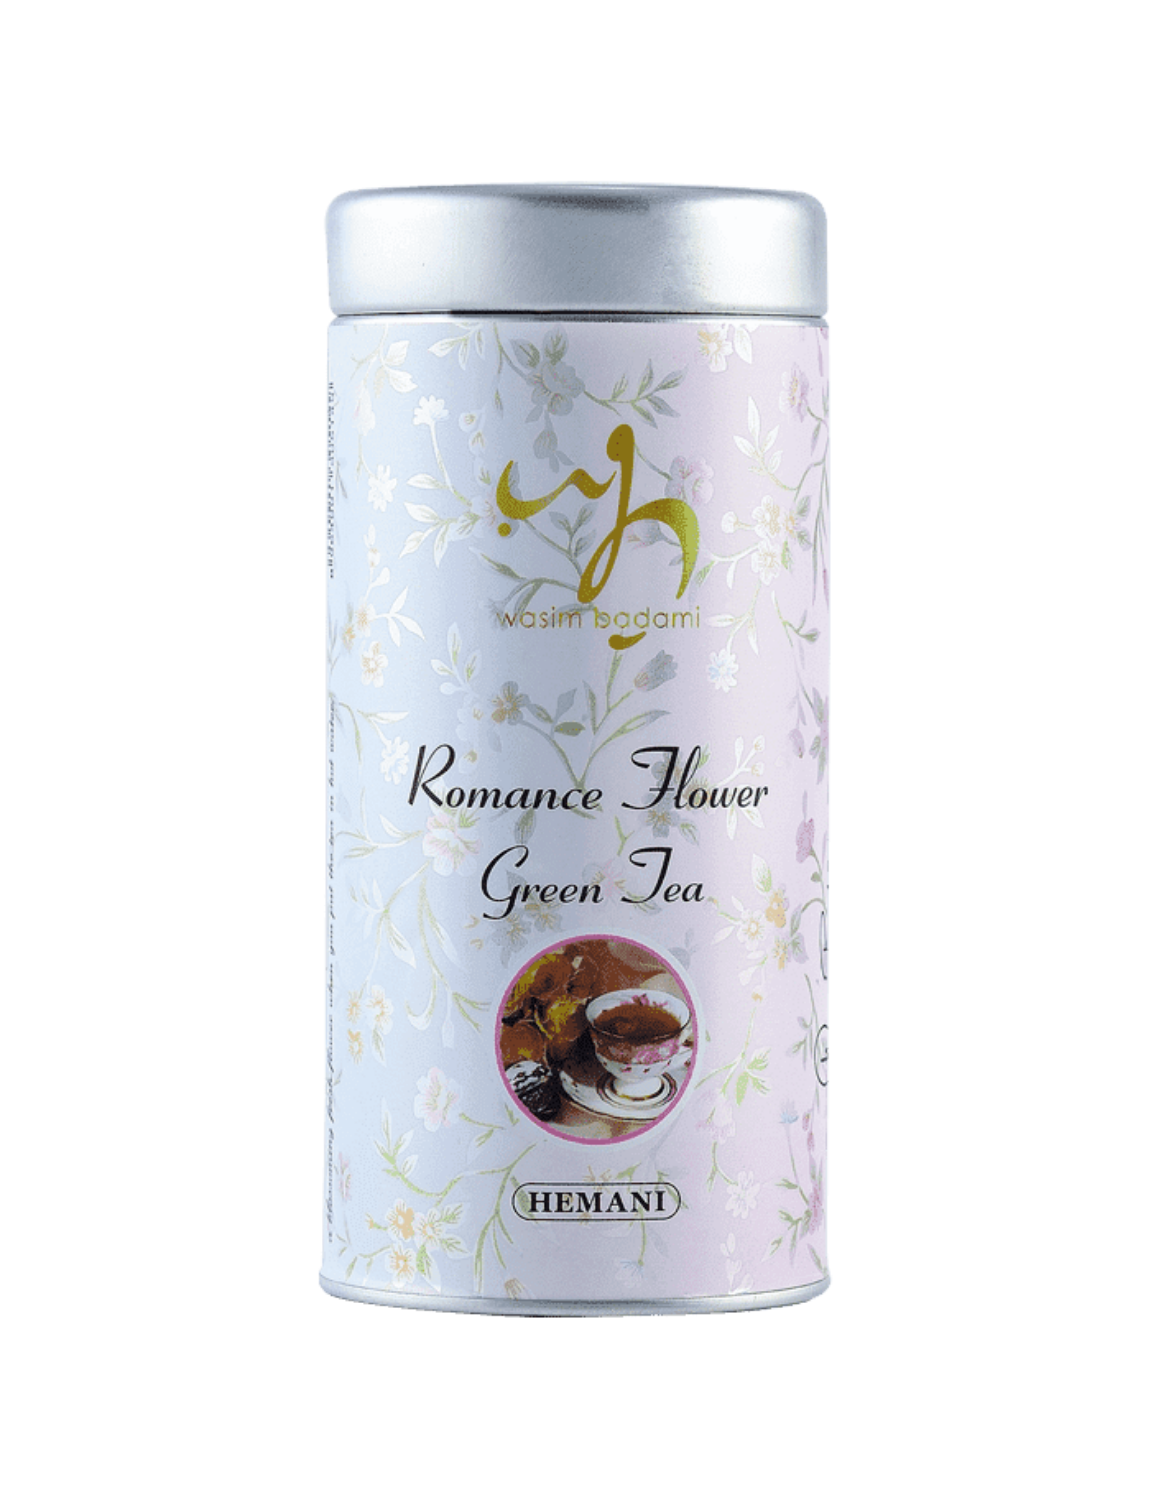 Romance Flower Green Tea